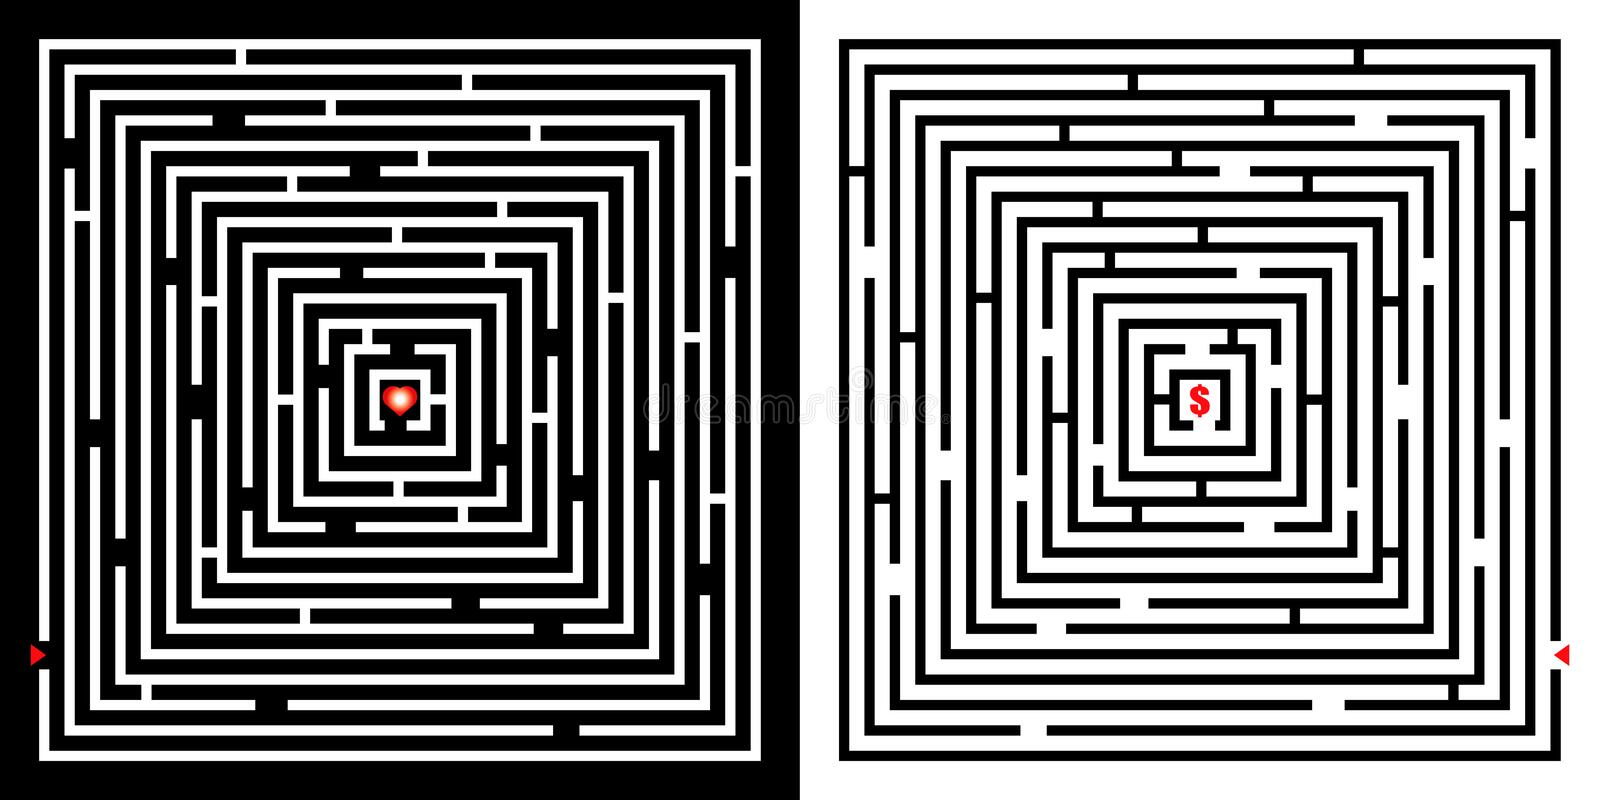 Labyrinthe illustration de vecteur